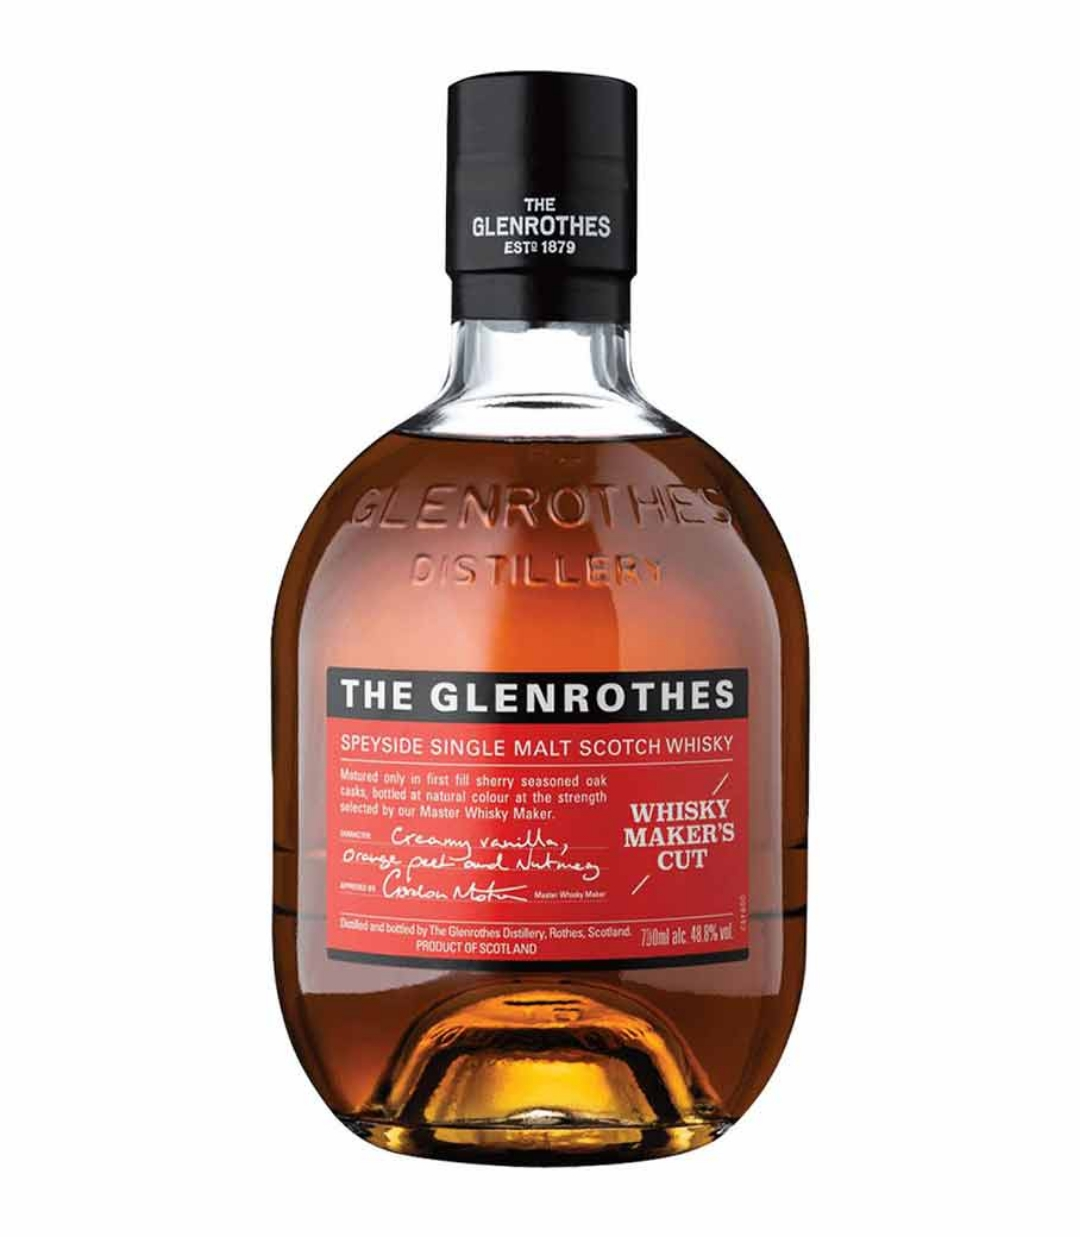 GLENROTHES MAKERS CUT WHISKY 700ml